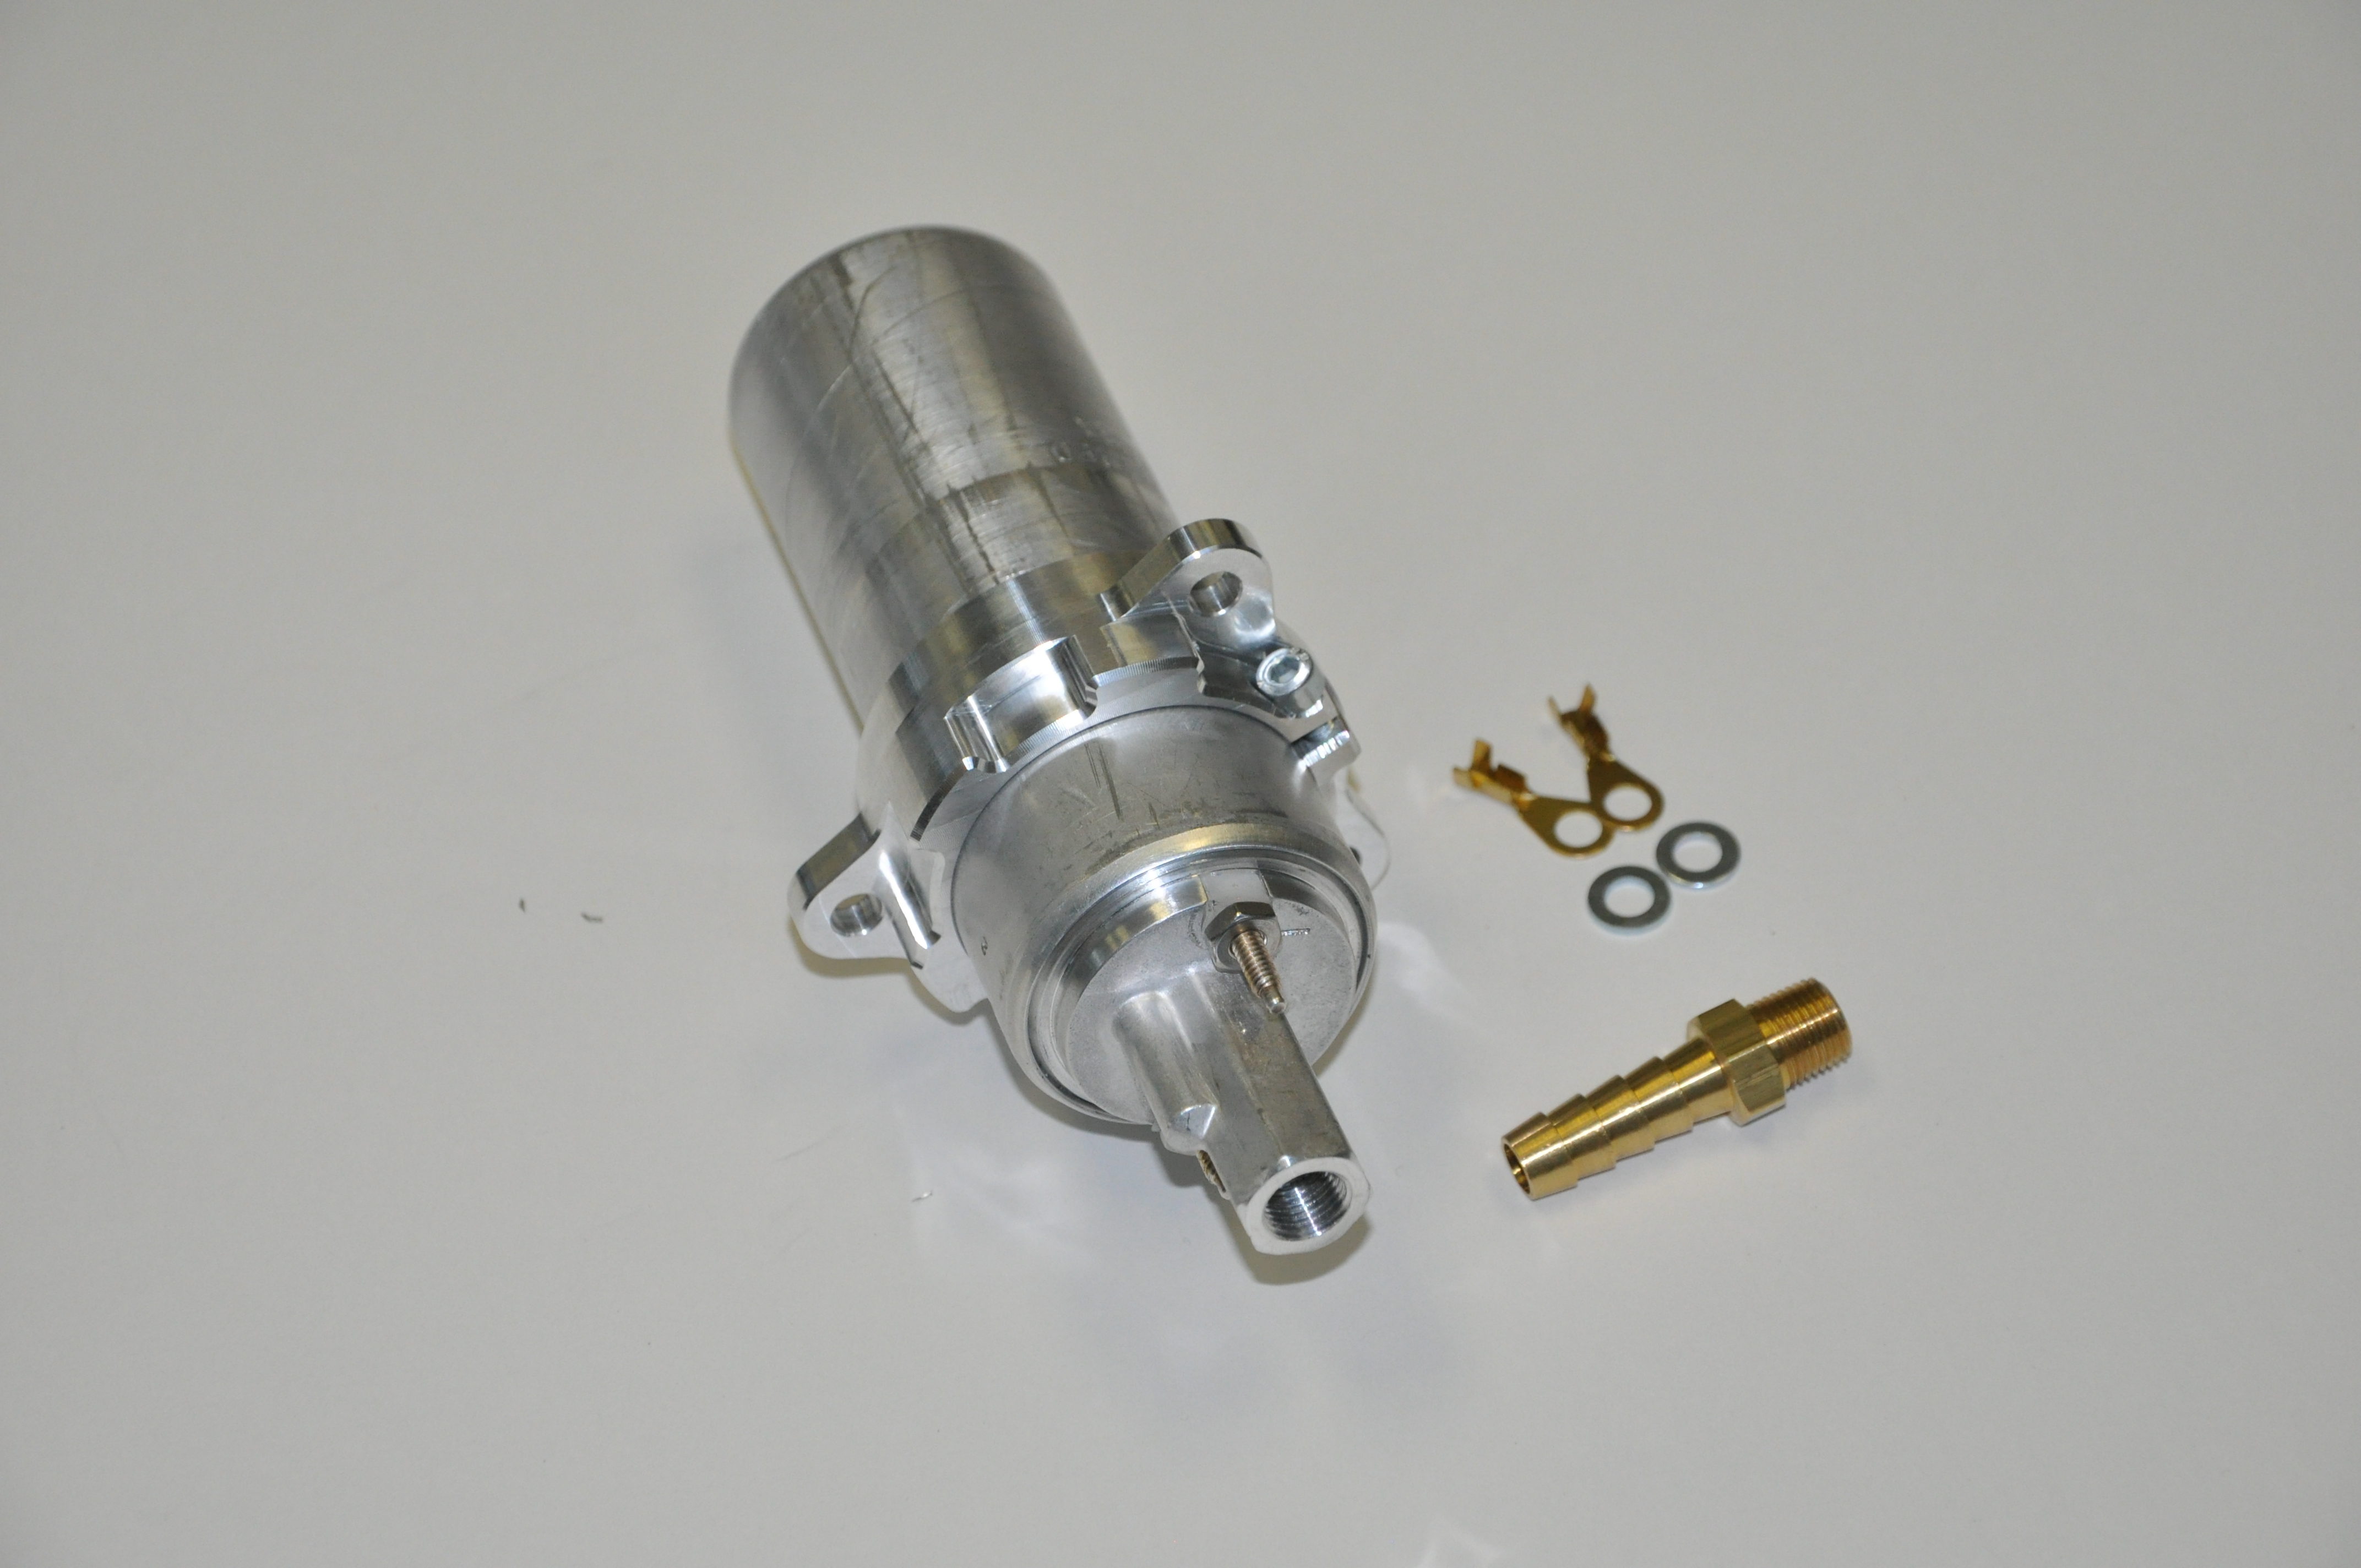 Bahn Brenner Motorsport High Volume Horsepower Mk2 Digifant Electric Fuel Pump Installation Instructions Start By Removing The Stock Set Aside Rubber O Ring And Plastic Strainer Basket Pictured Below Carefully Grind Lip Off